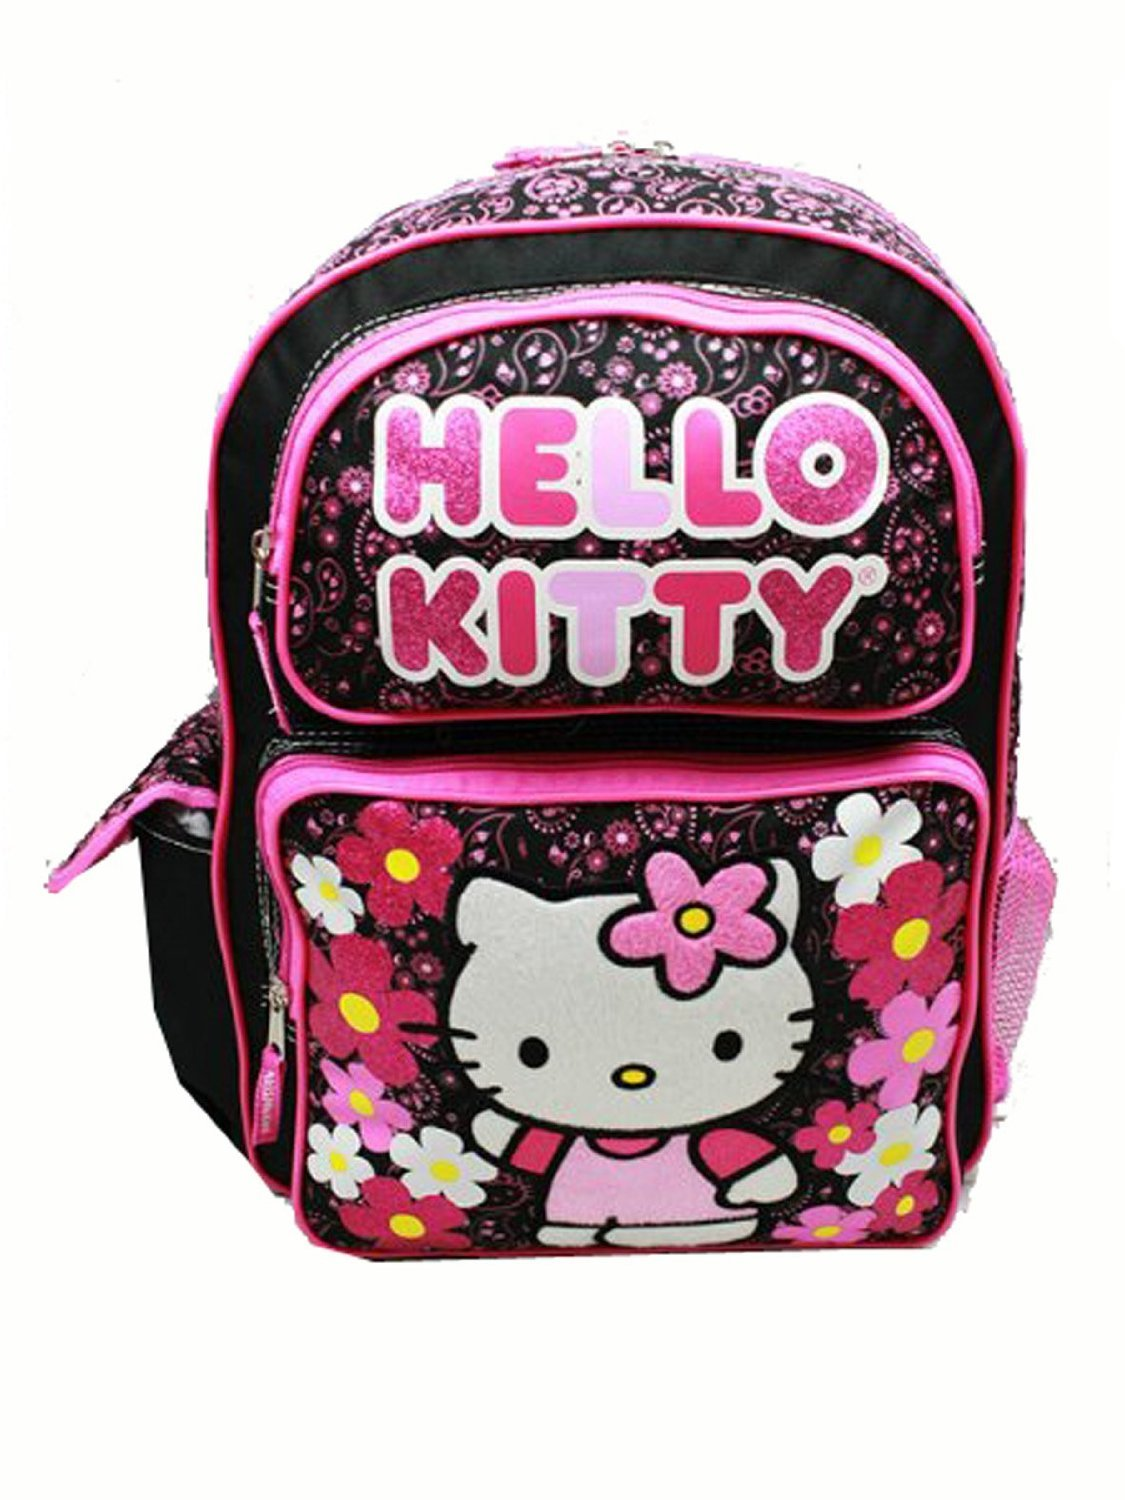 Hello Kitty Sanrio Hello Kitty Large Backpack - Flowers Black School Bag